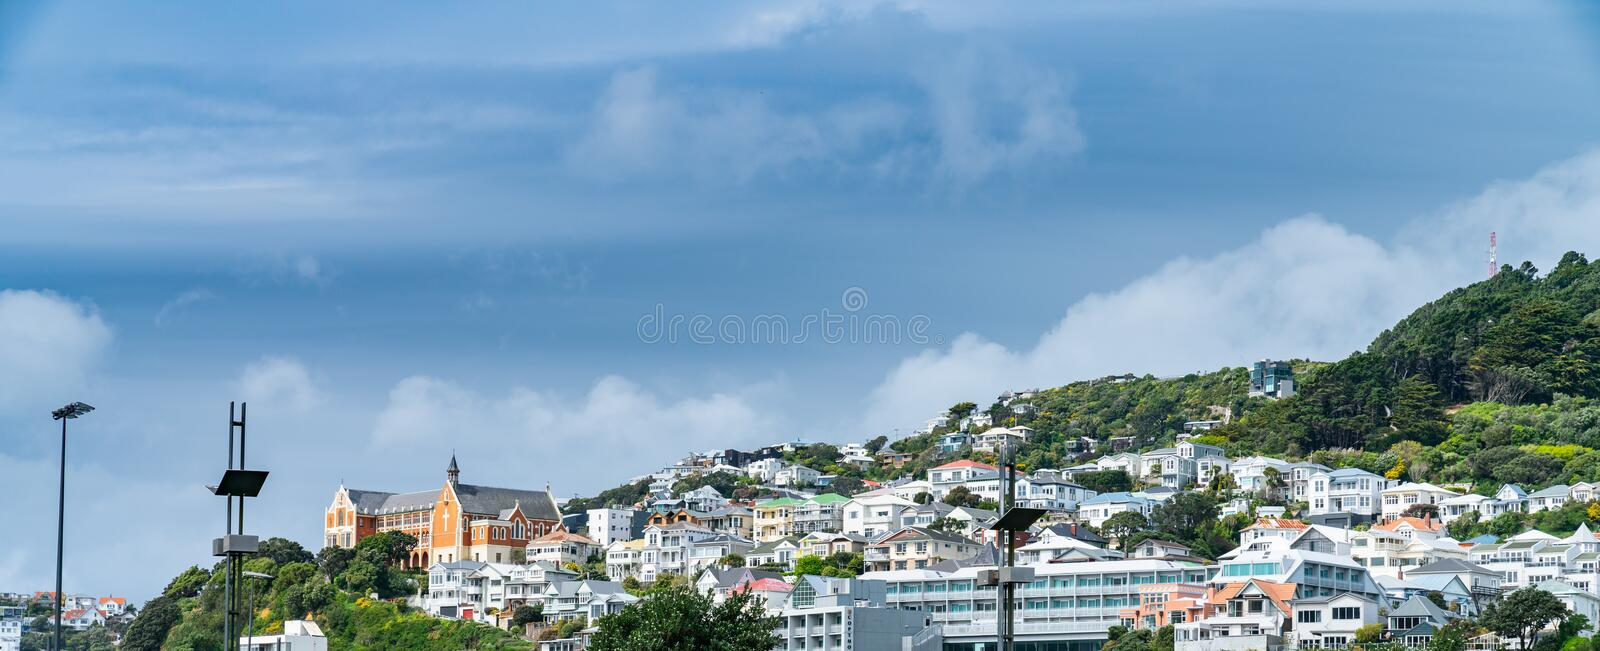 Homes and buildings on slopes of Mount Victoria. Wellington, New Zealand stock images